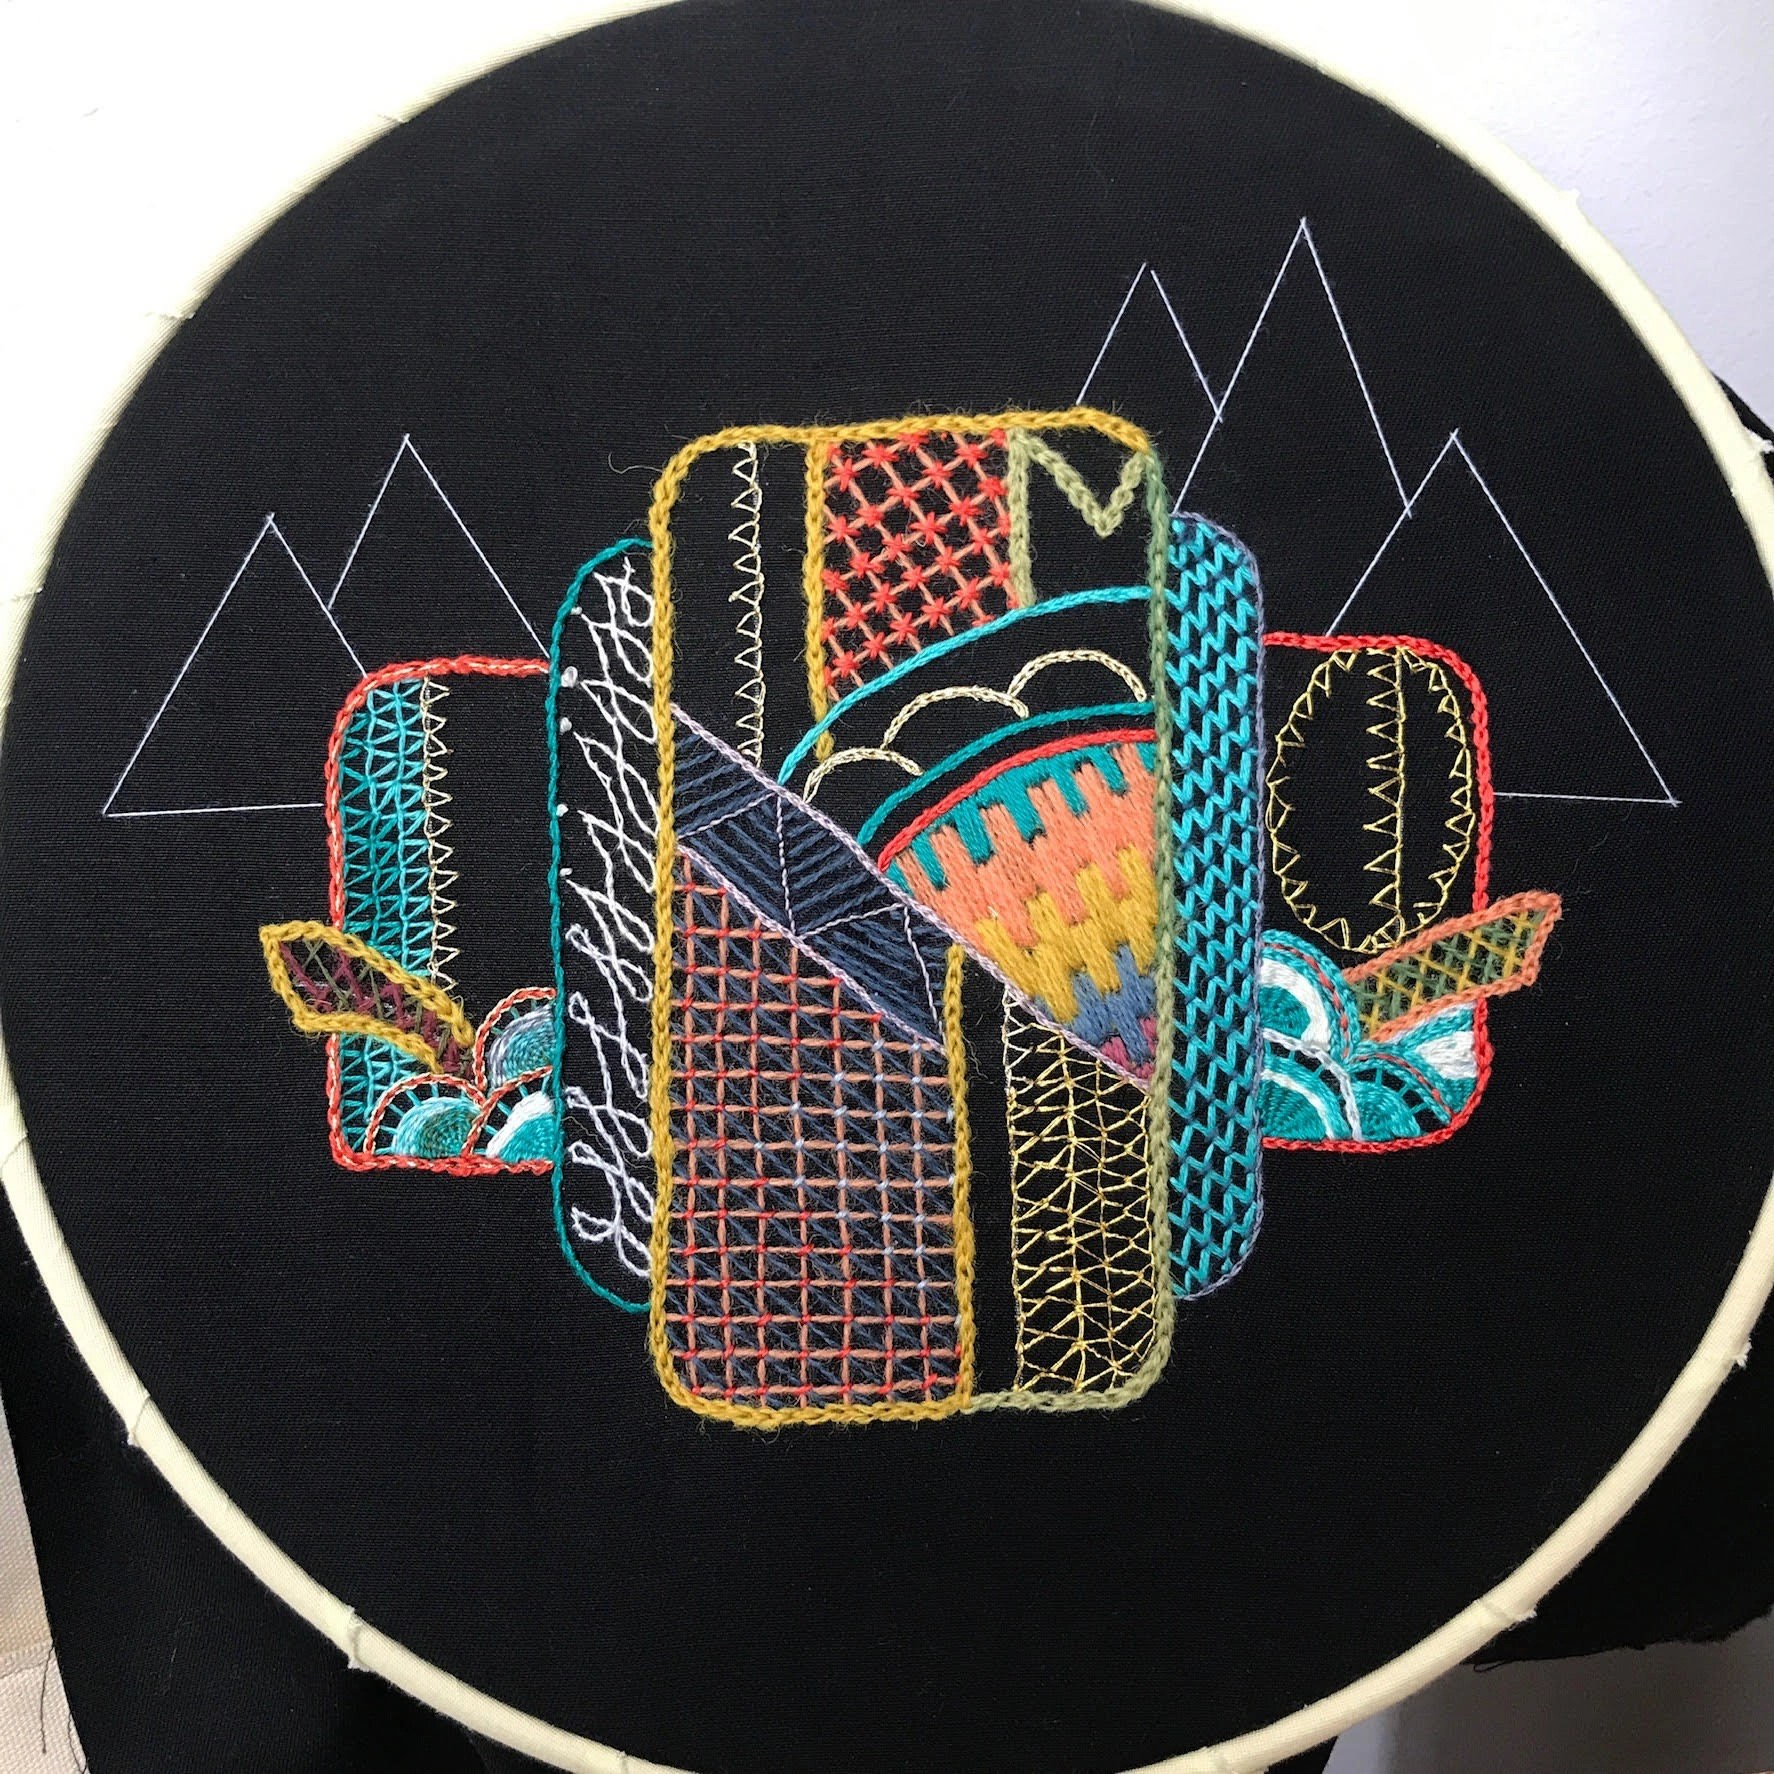 Intro to Embroidery: Geometric, by Minjeng, CA